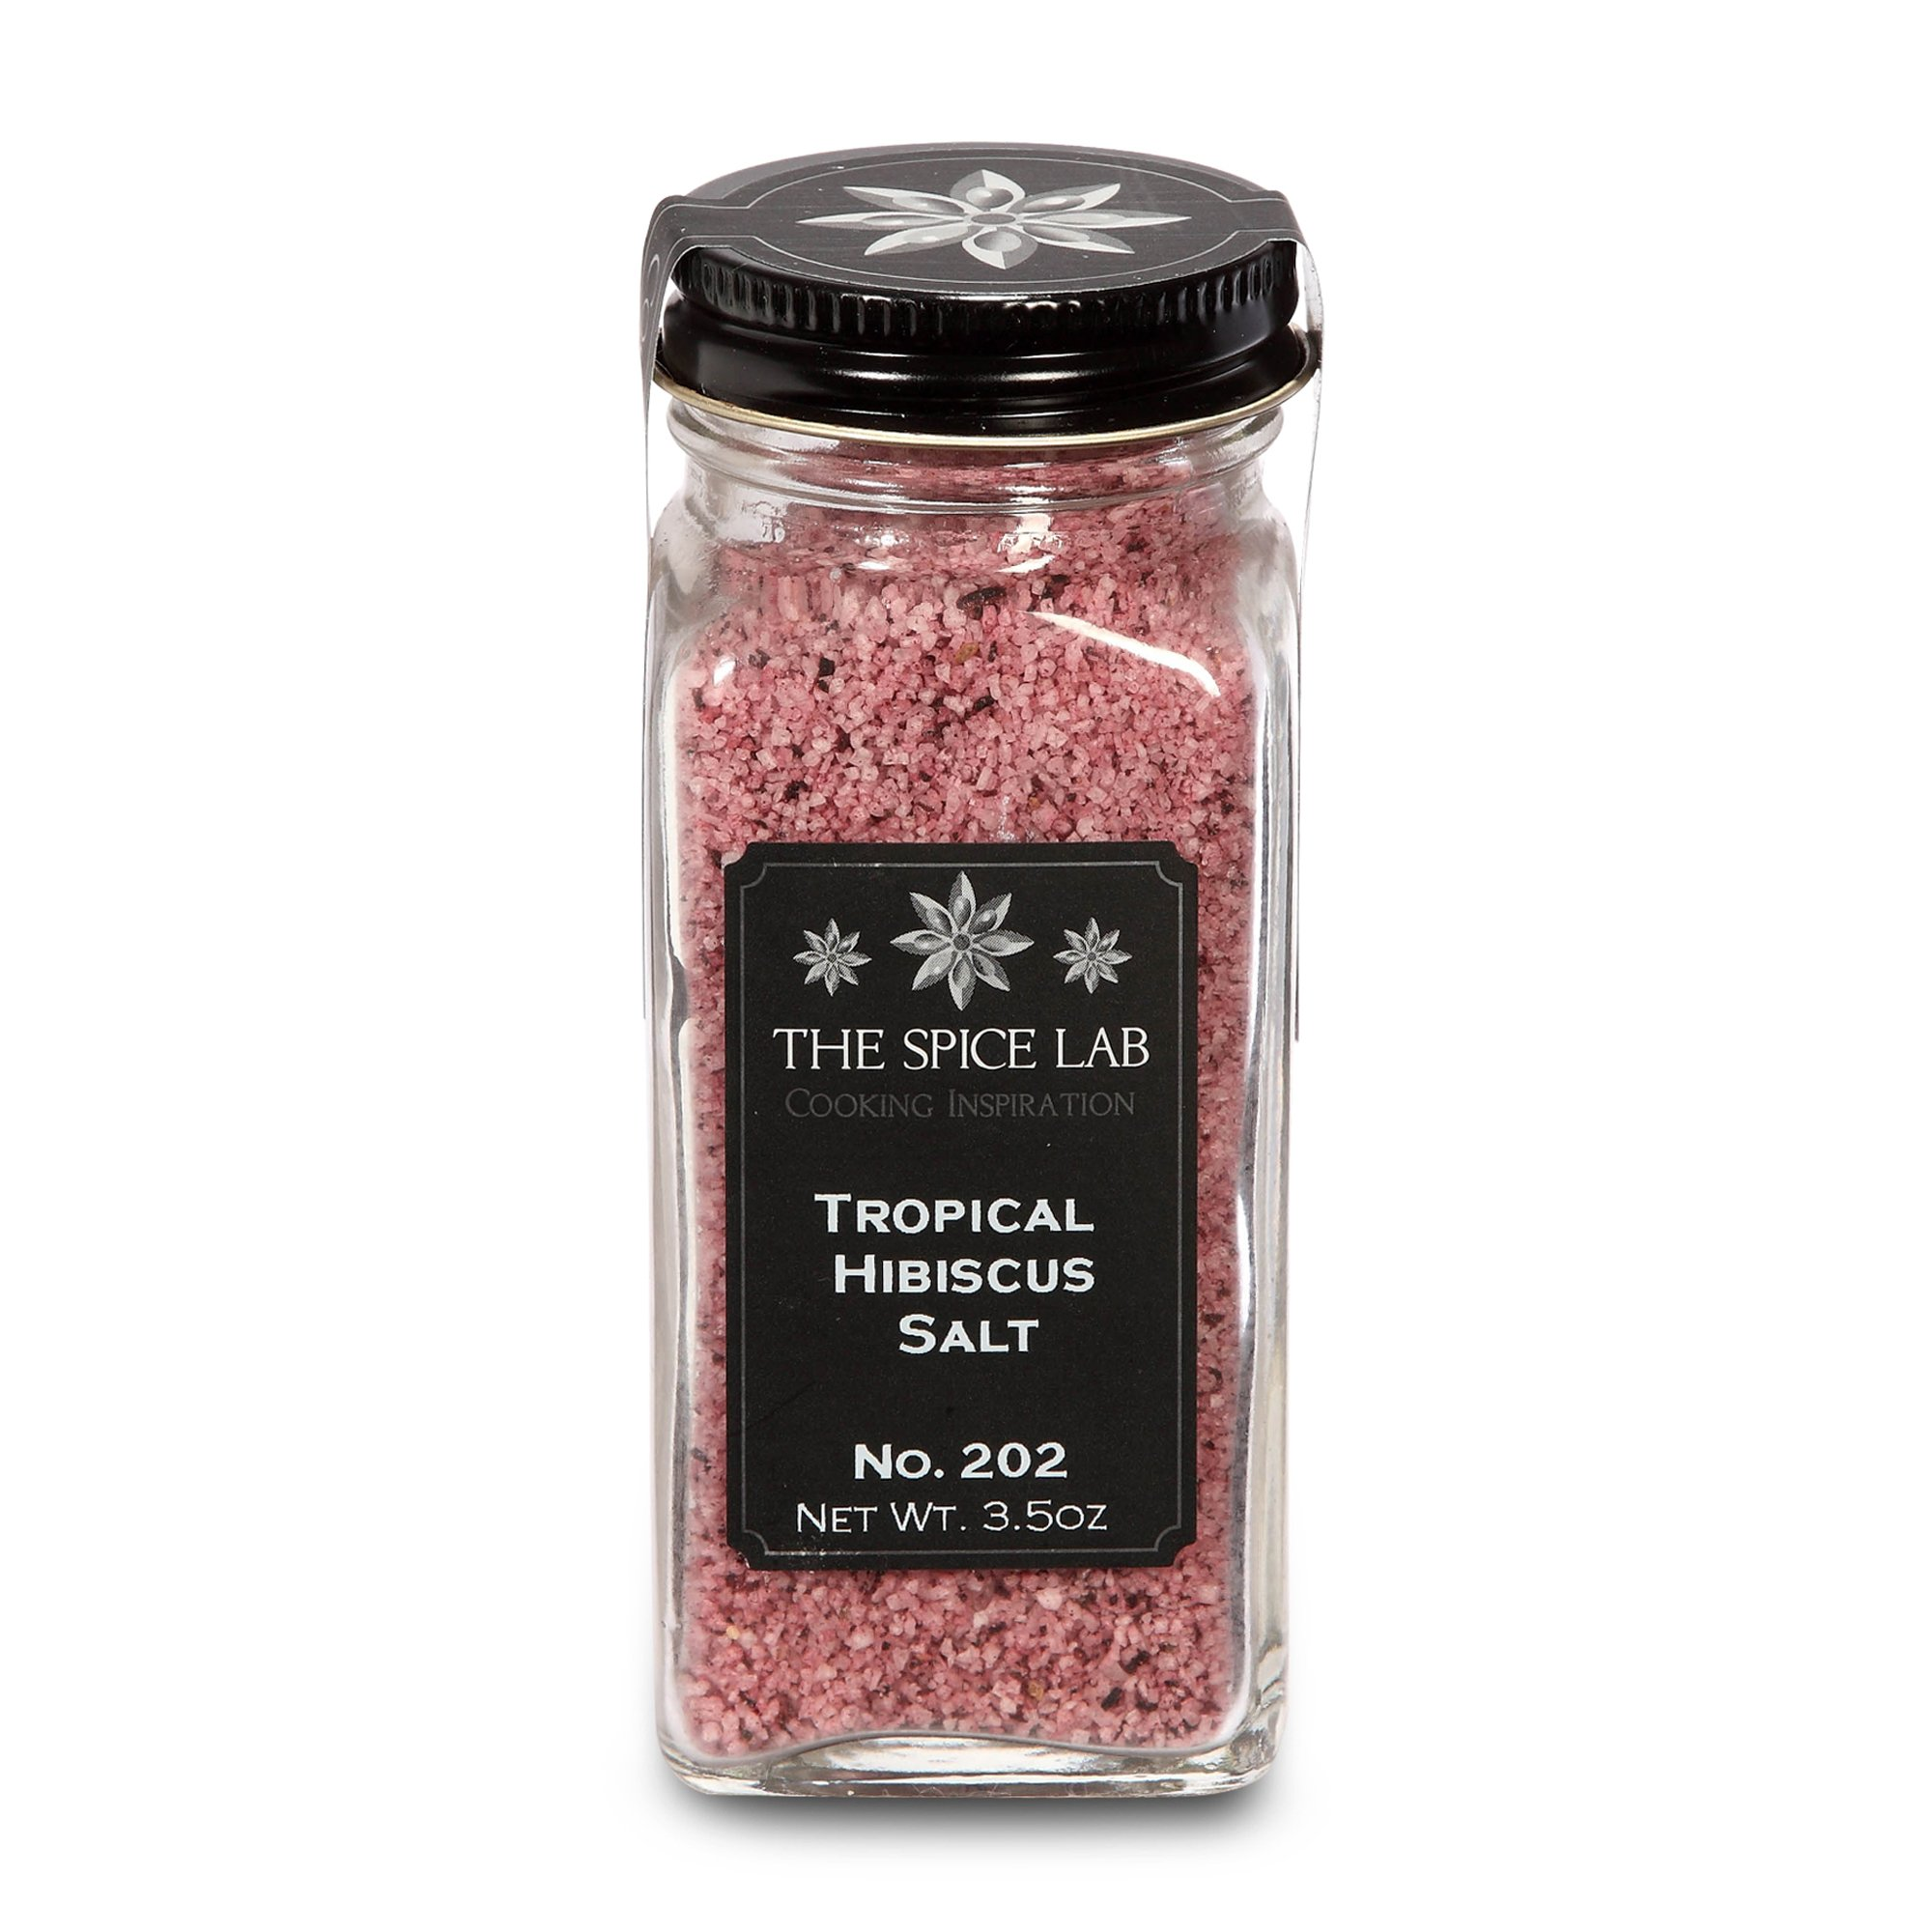 The Spice Lab No. 202 - Tropical Hibiscus Salt - Gluten-Free Non-GMO All Natural Premium Gourmet Salt - French Jar